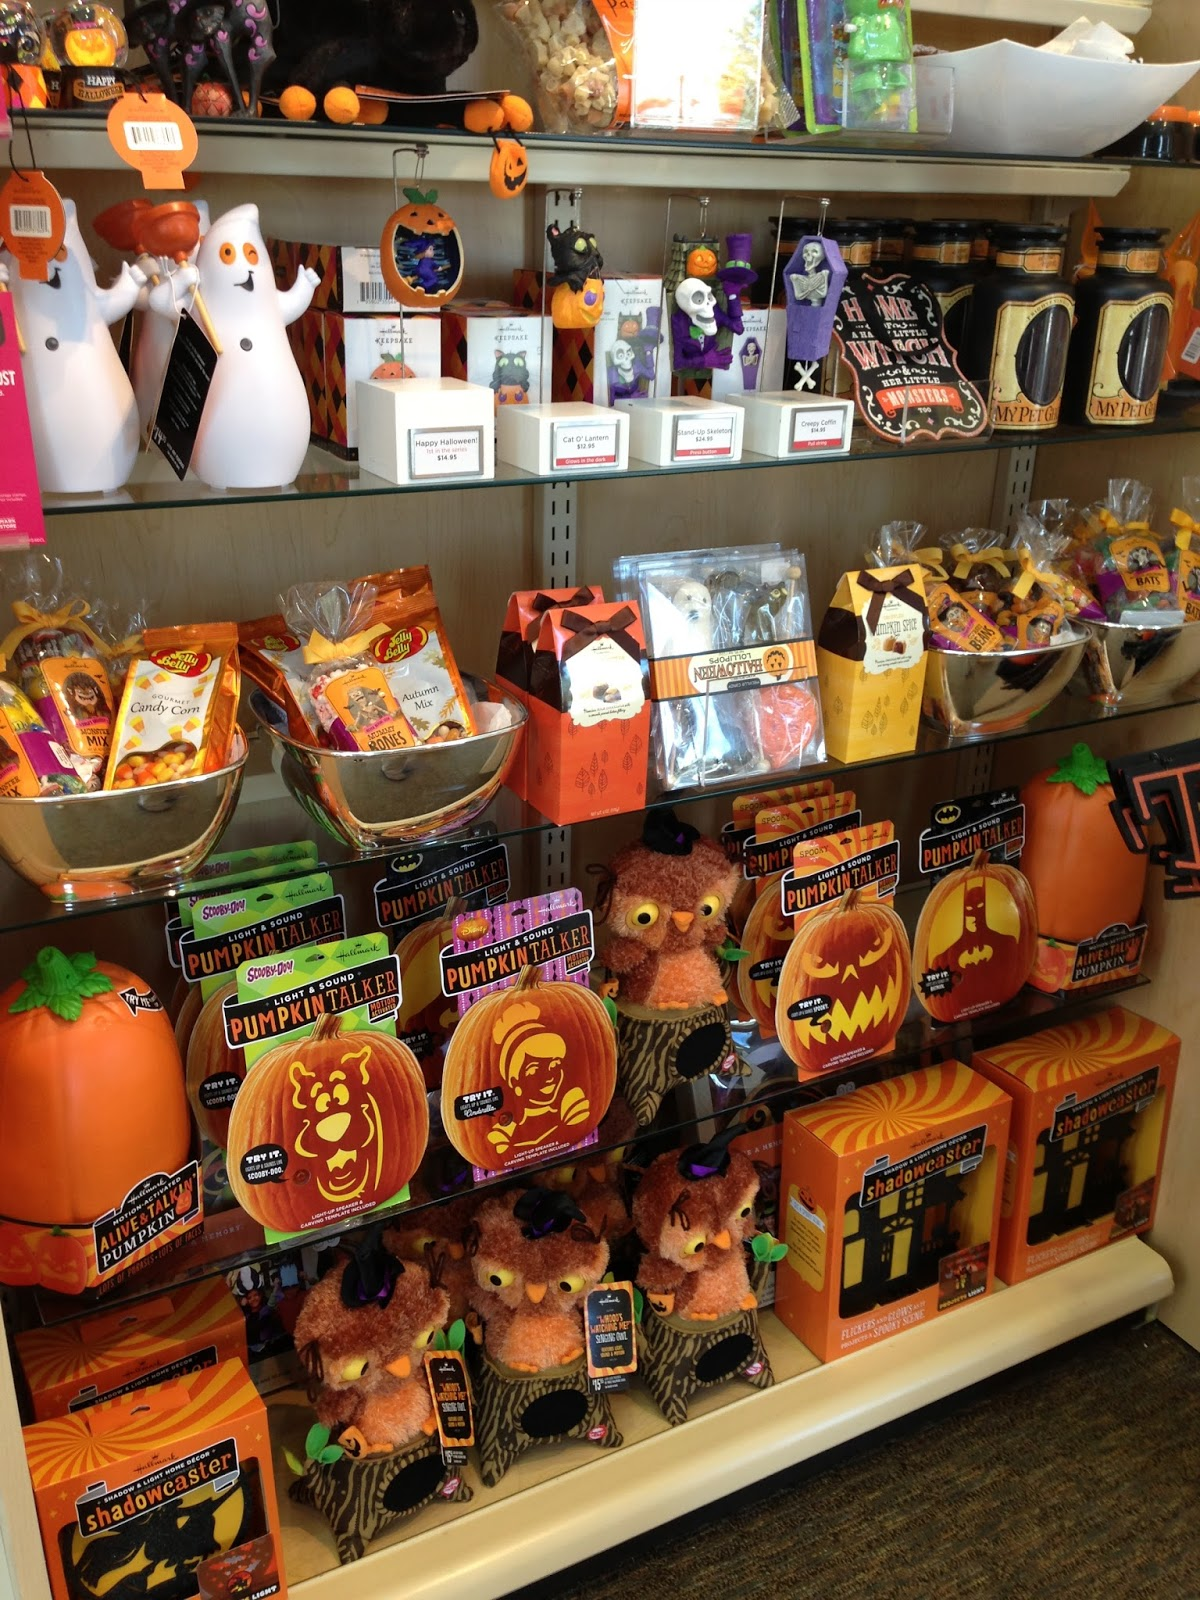 fright bites photo report halloween finds at big lots and hallmark - Hallmark Halloween Decorations